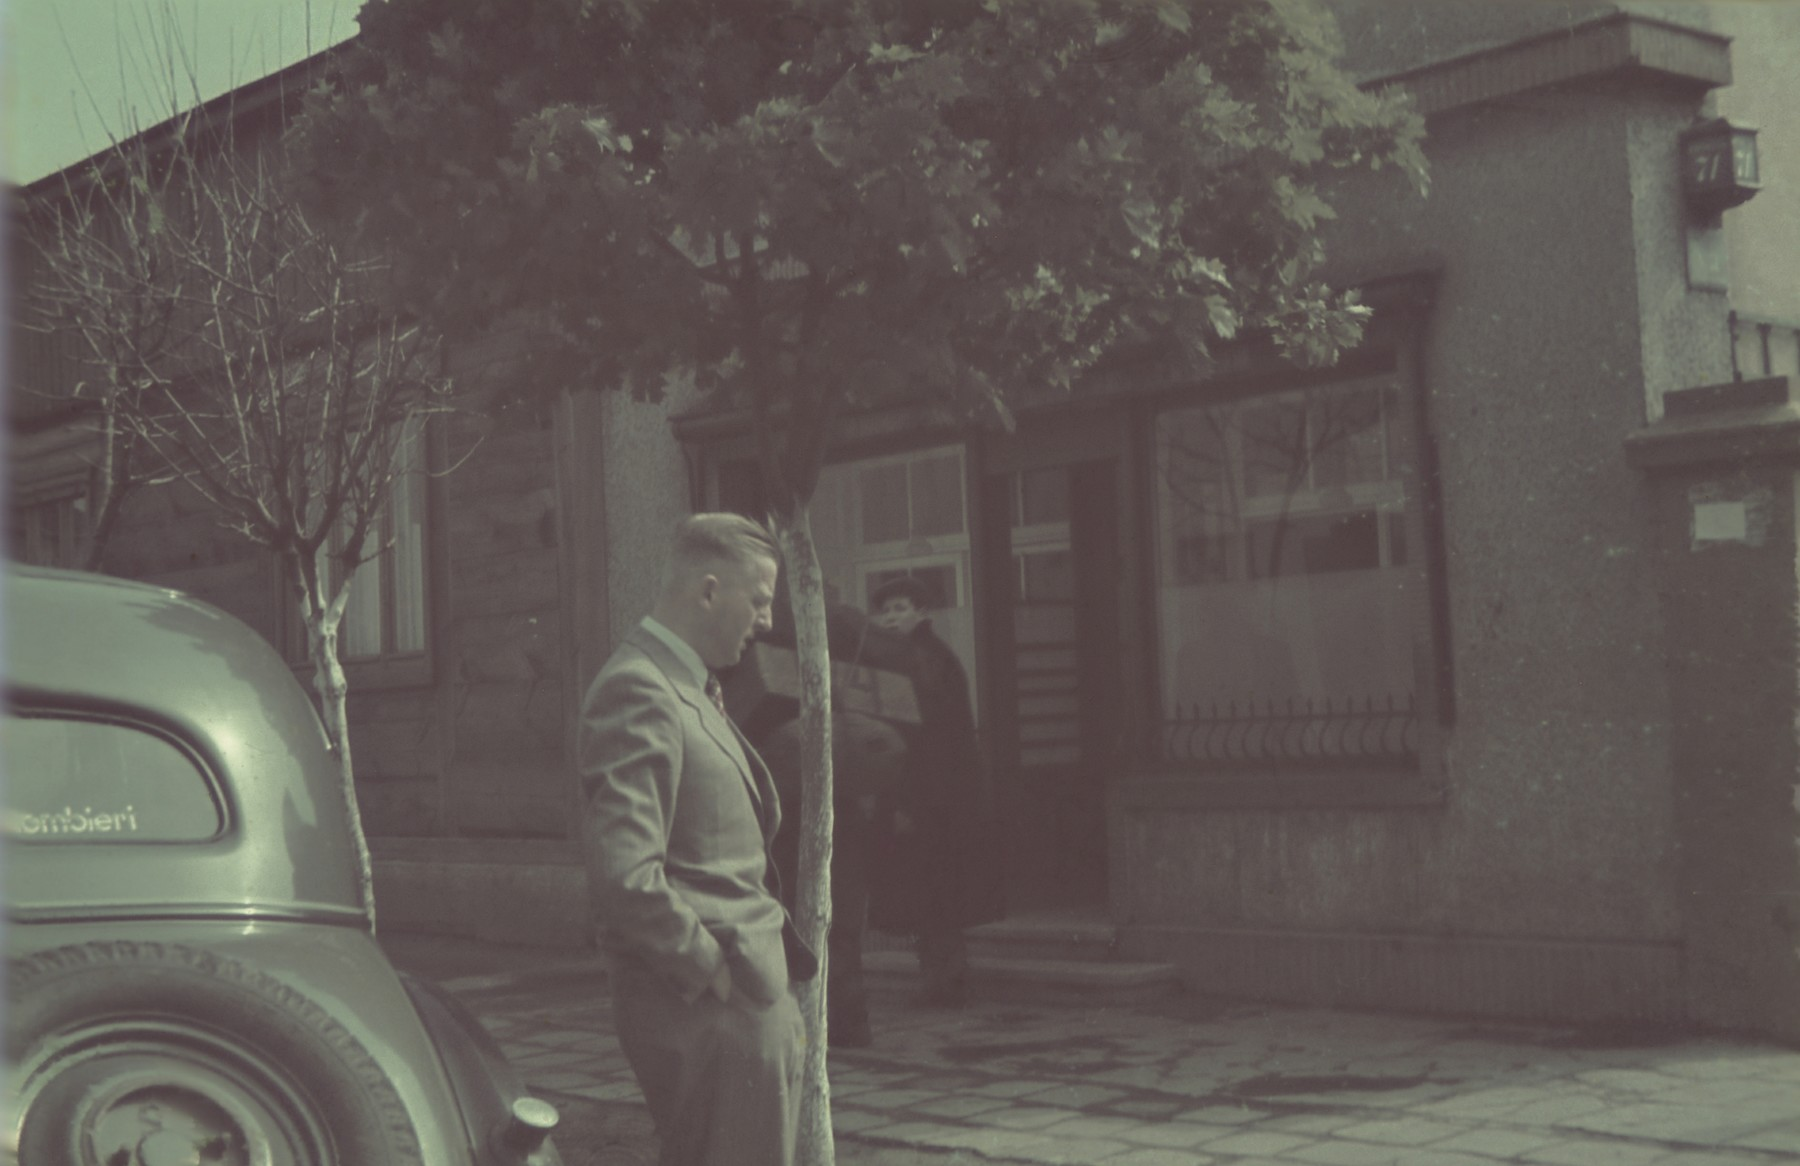 Hans Biebow stands next to an automobile on a street scene in the Lodz ghetto.